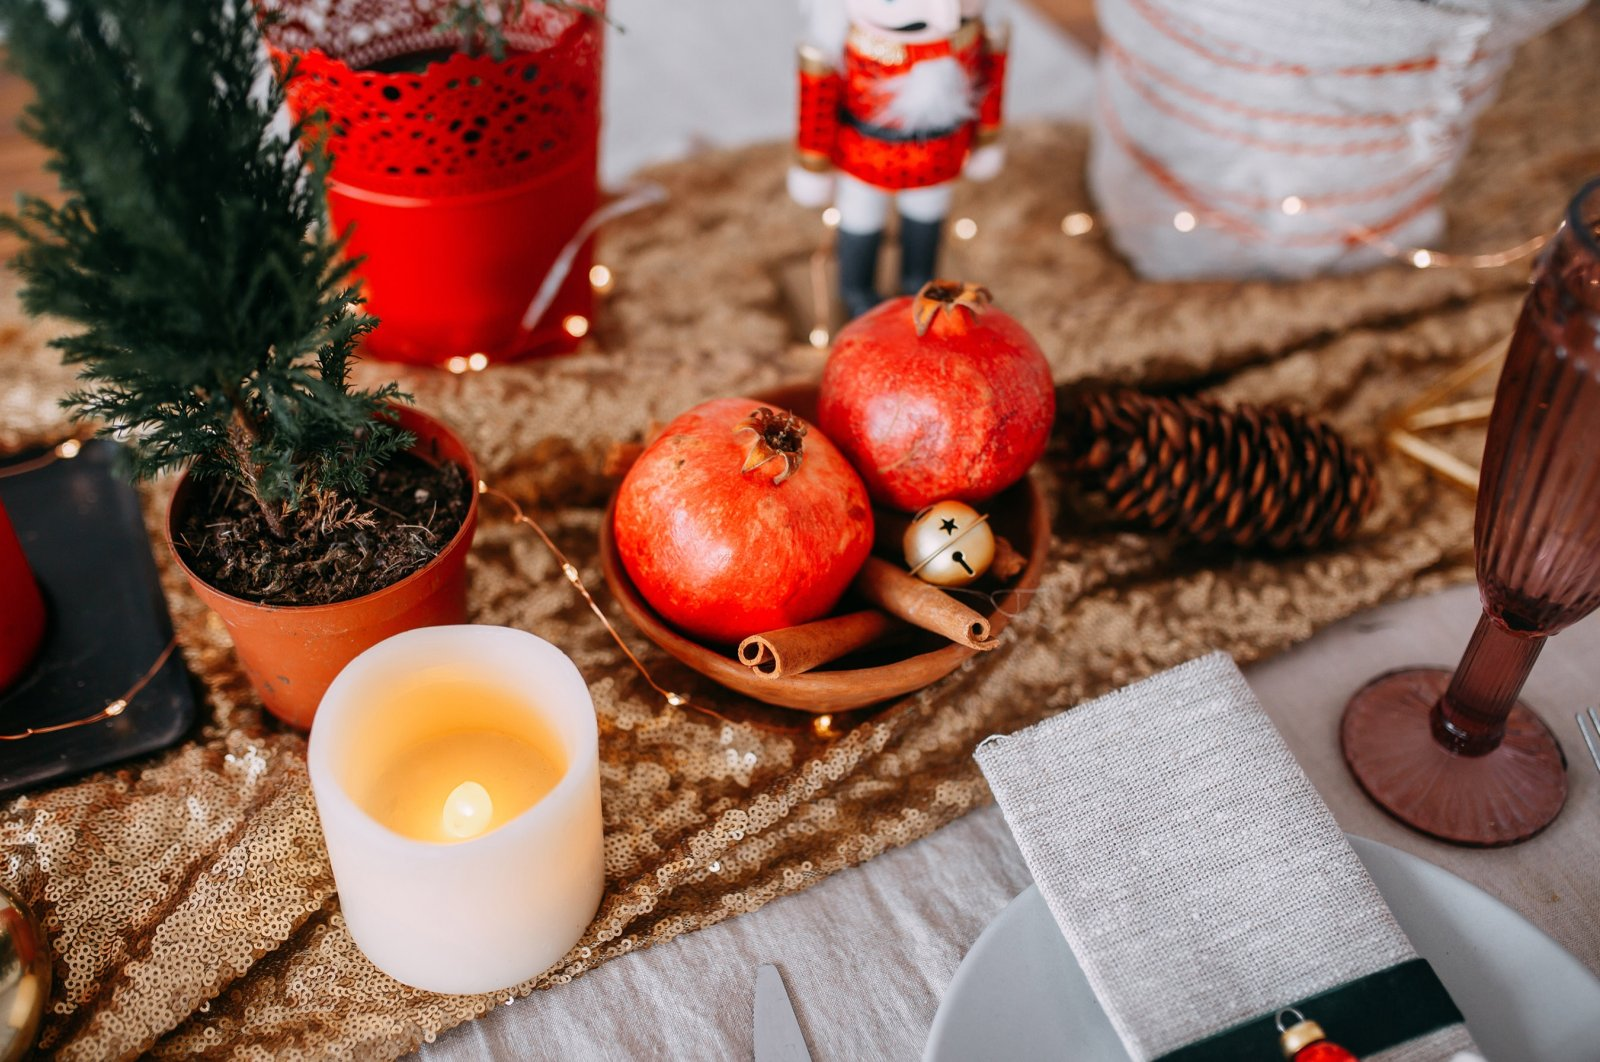 Putting up trees, decorating, cooking meals and wearing lucky items are some of the customs Turks have for the new year. (Shutterstock Photo)